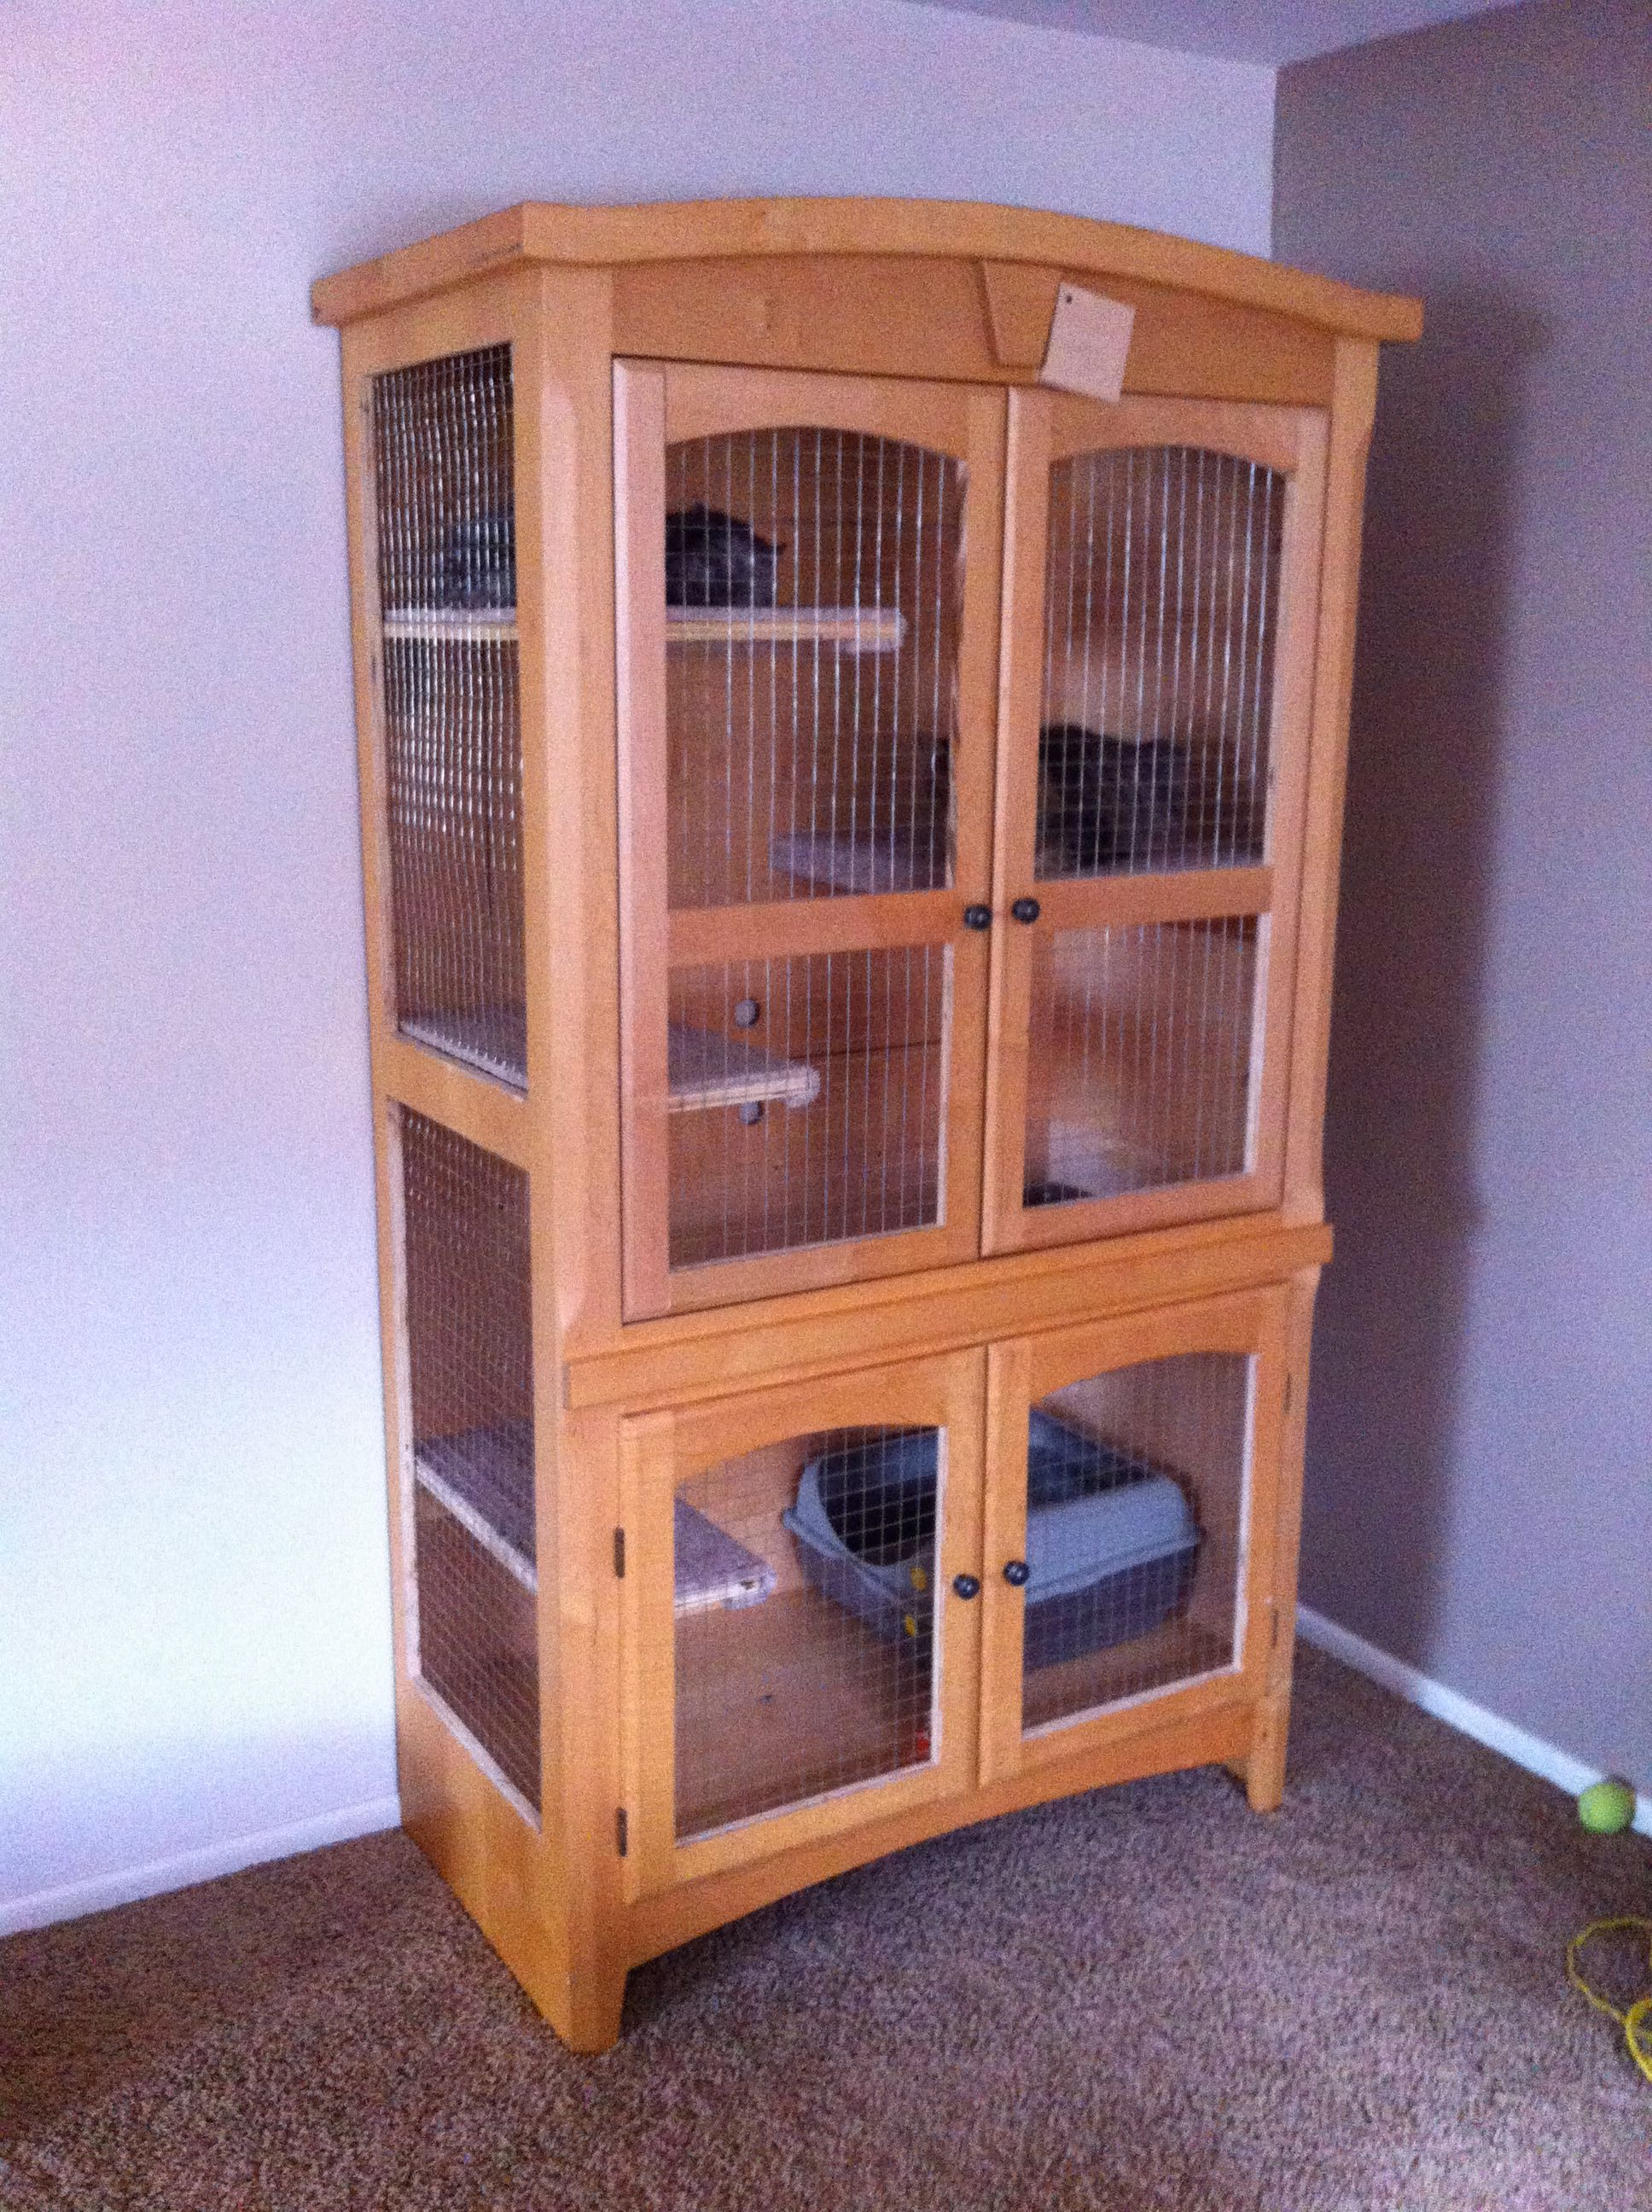 Cat Furniture For Sale Cat Cage A Wardrobe Refurbished For A Cat Cage For Sale